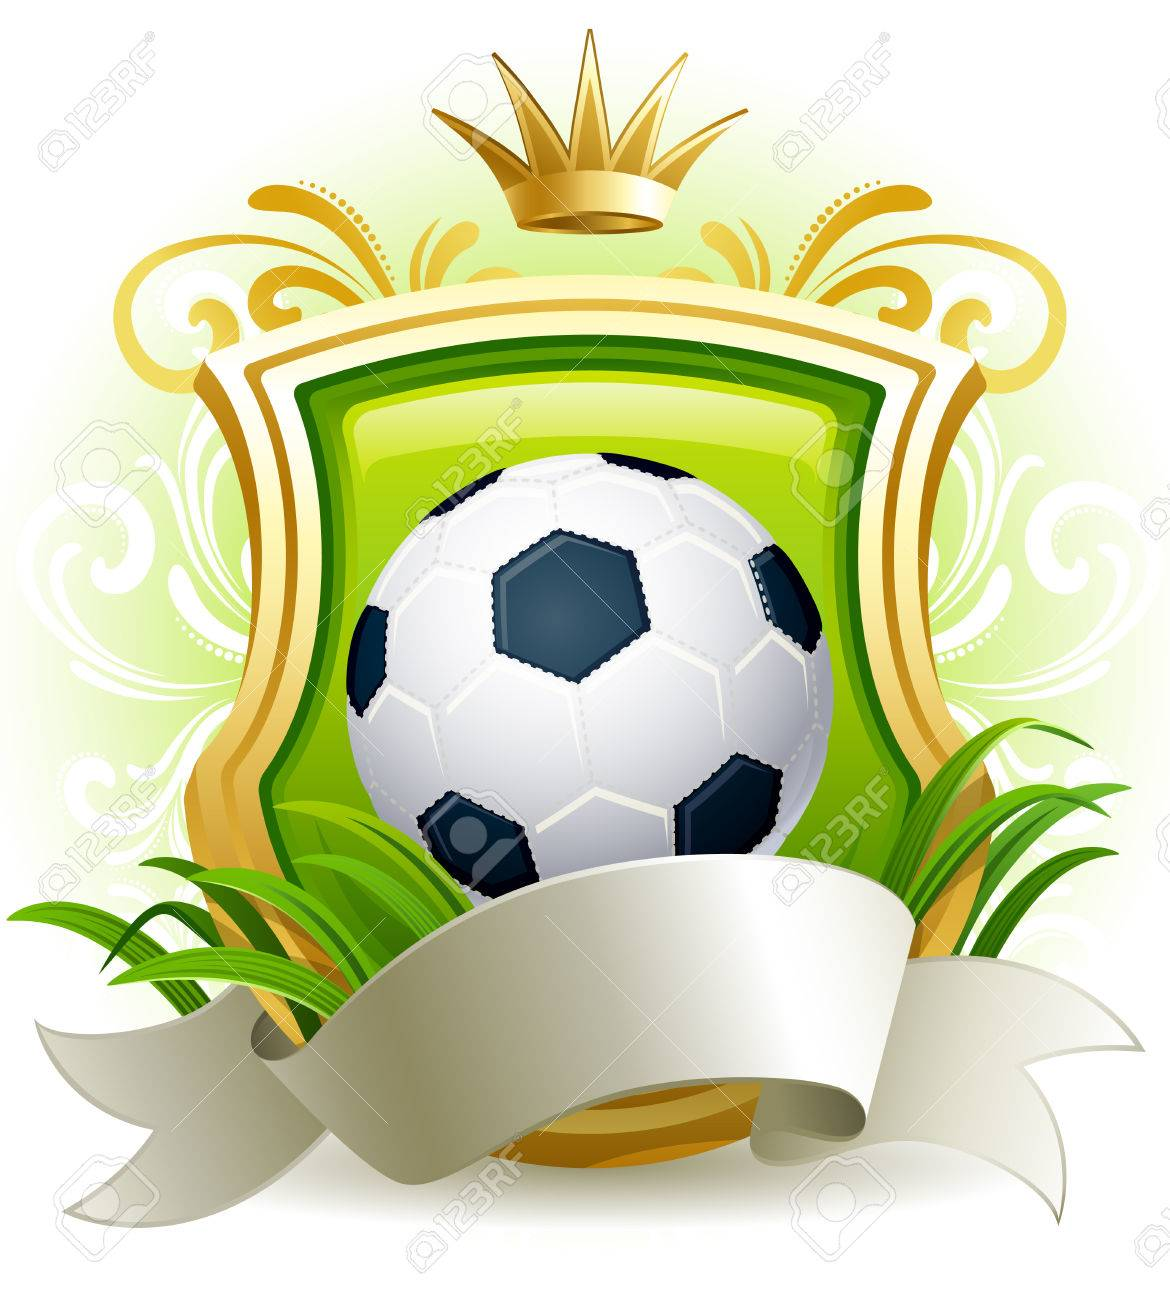 bf2d621780b Illustration - Banners With Soccer Ball